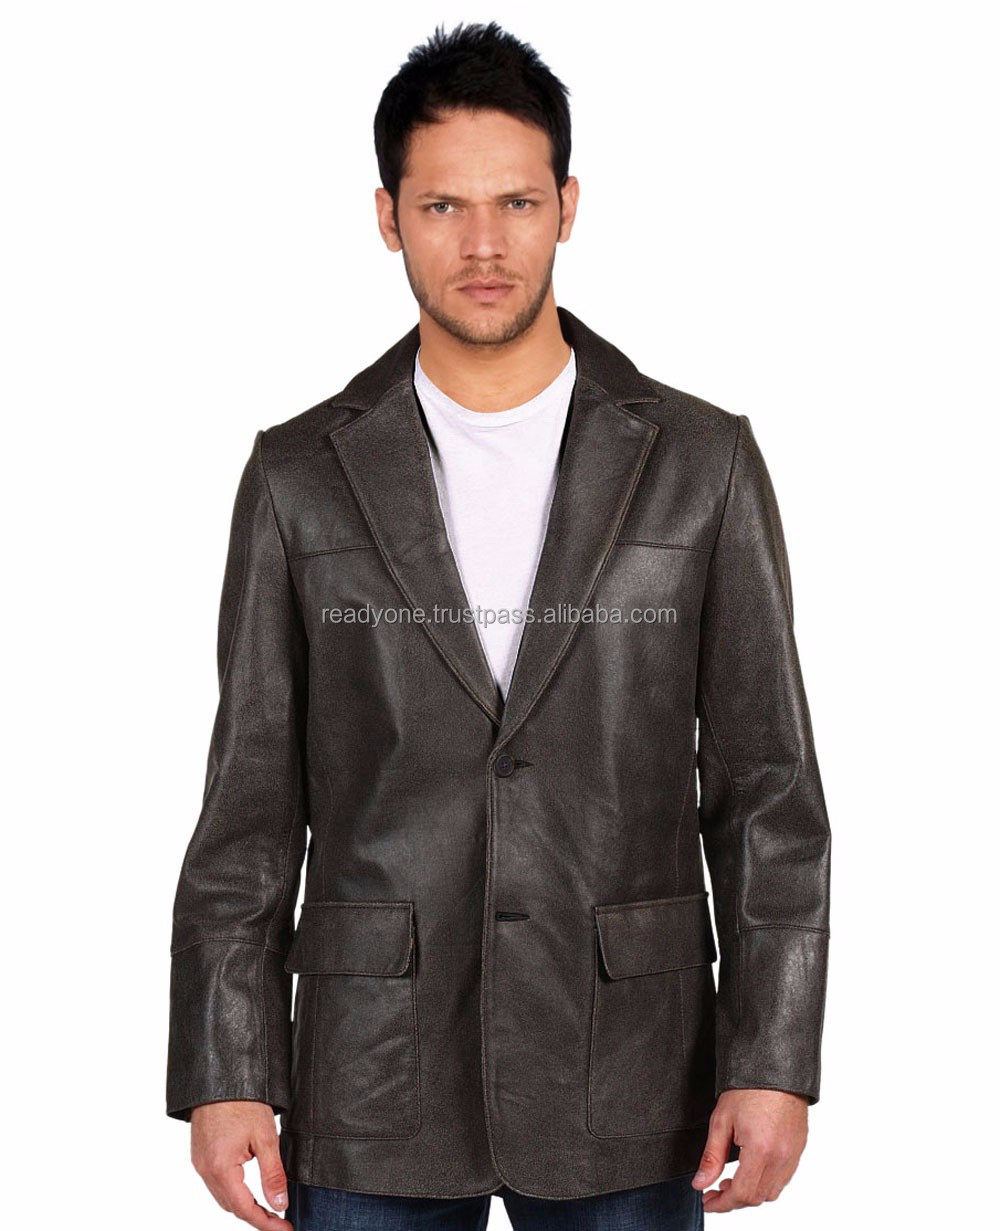 Bulk Wholesale Clothing Men's Leather Suede Jackets Importers In UK